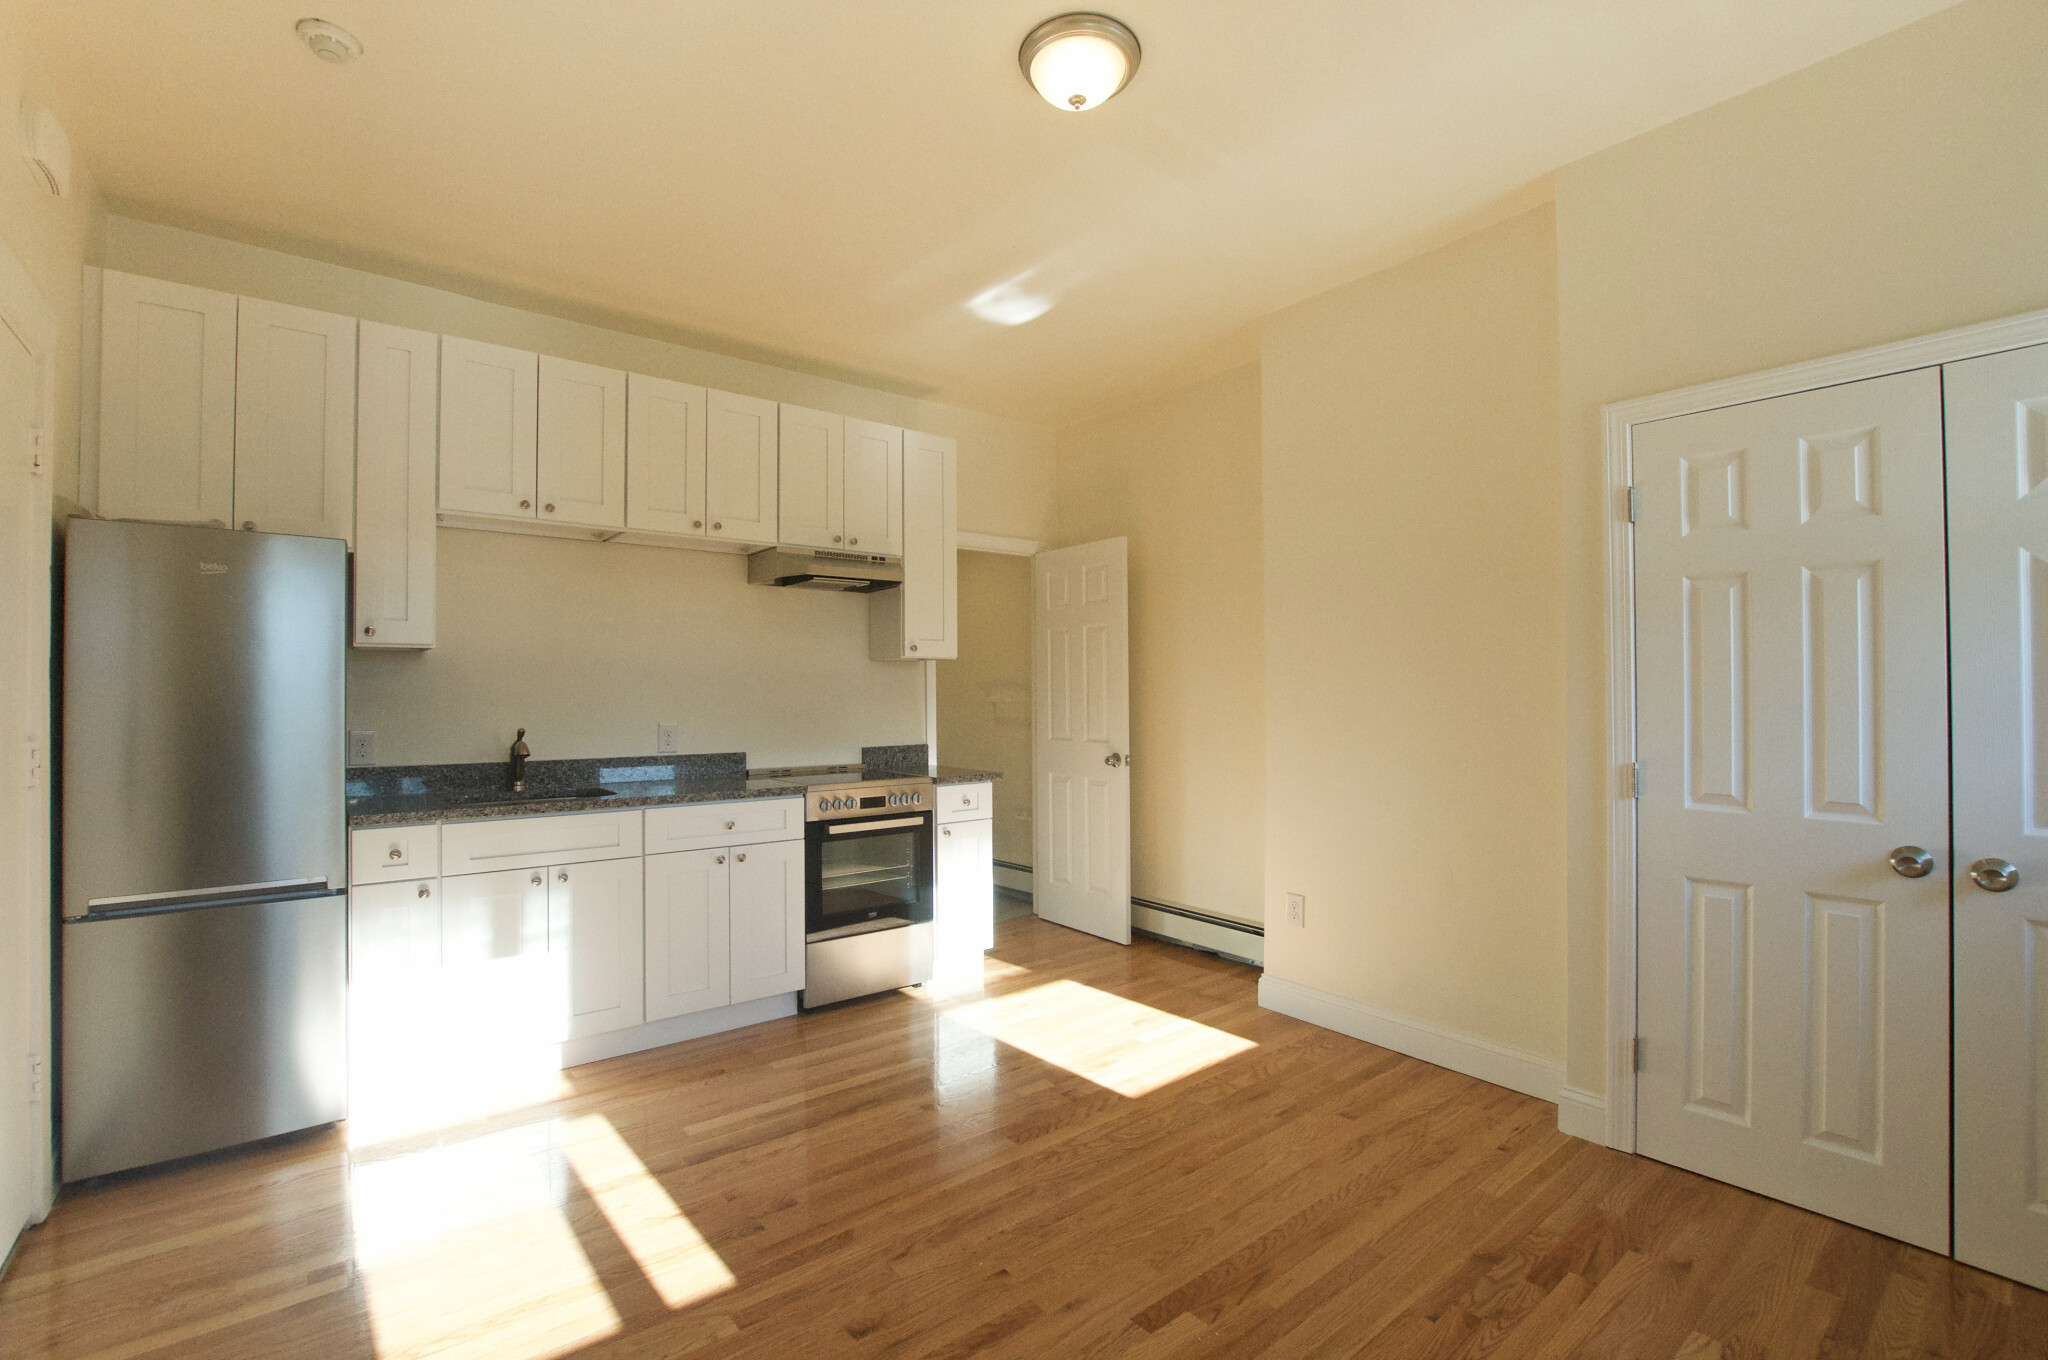 Studio, 1 Bath apartment in Boston, South Boston for $1,650